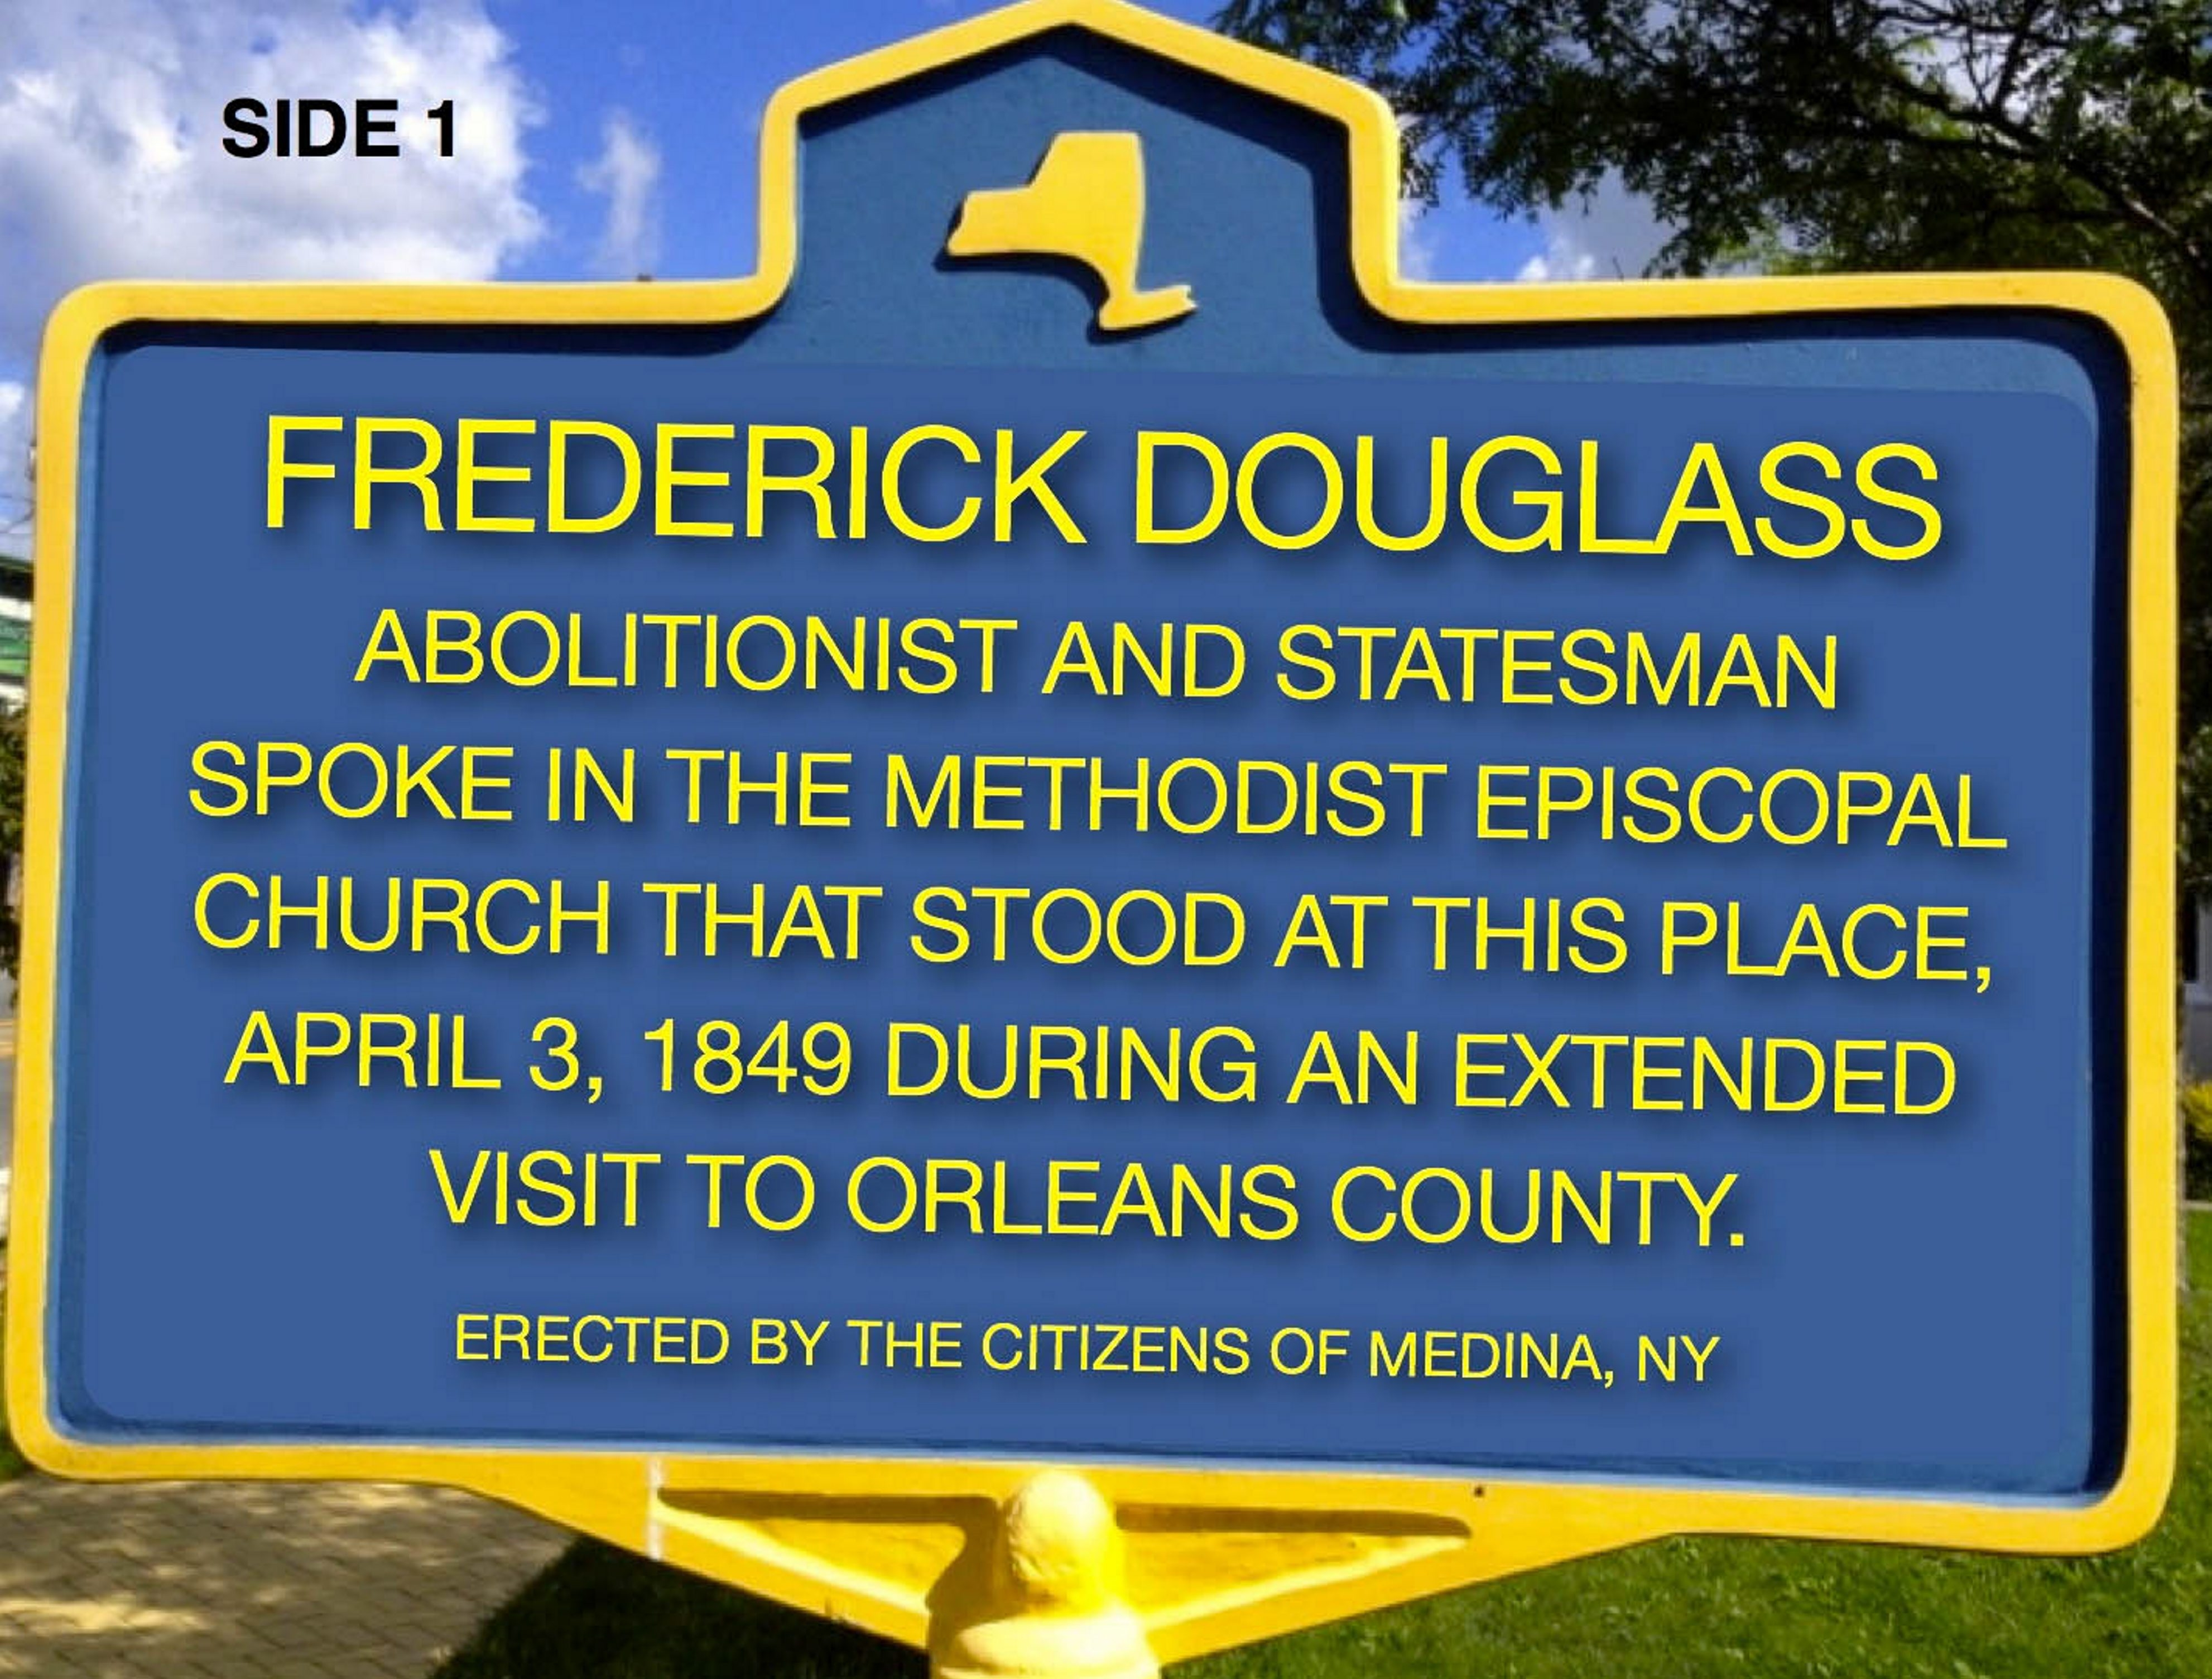 One side of the state historical marker honoring 19th-century African-American leader Frederick Douglass that will be dedi- cated in a ceremony at 9 a.m. Friday on the Main Street site in Medina where the famed abolitionist and statesman once spoke.